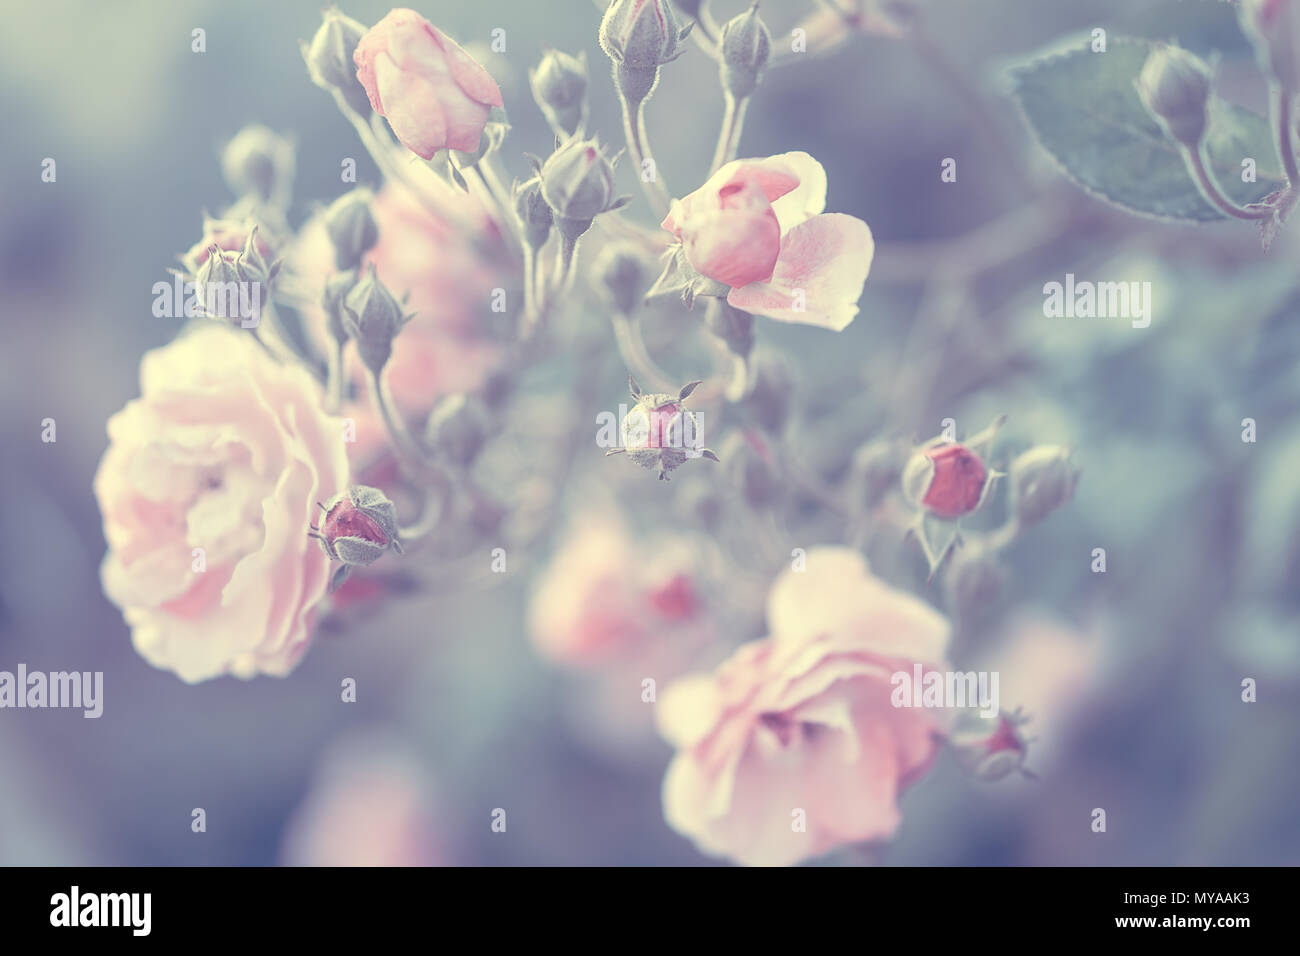 Pastel rose background, vintage style photo of a tender pink rose bush, fine art flowers, beautiful floral wallpaper